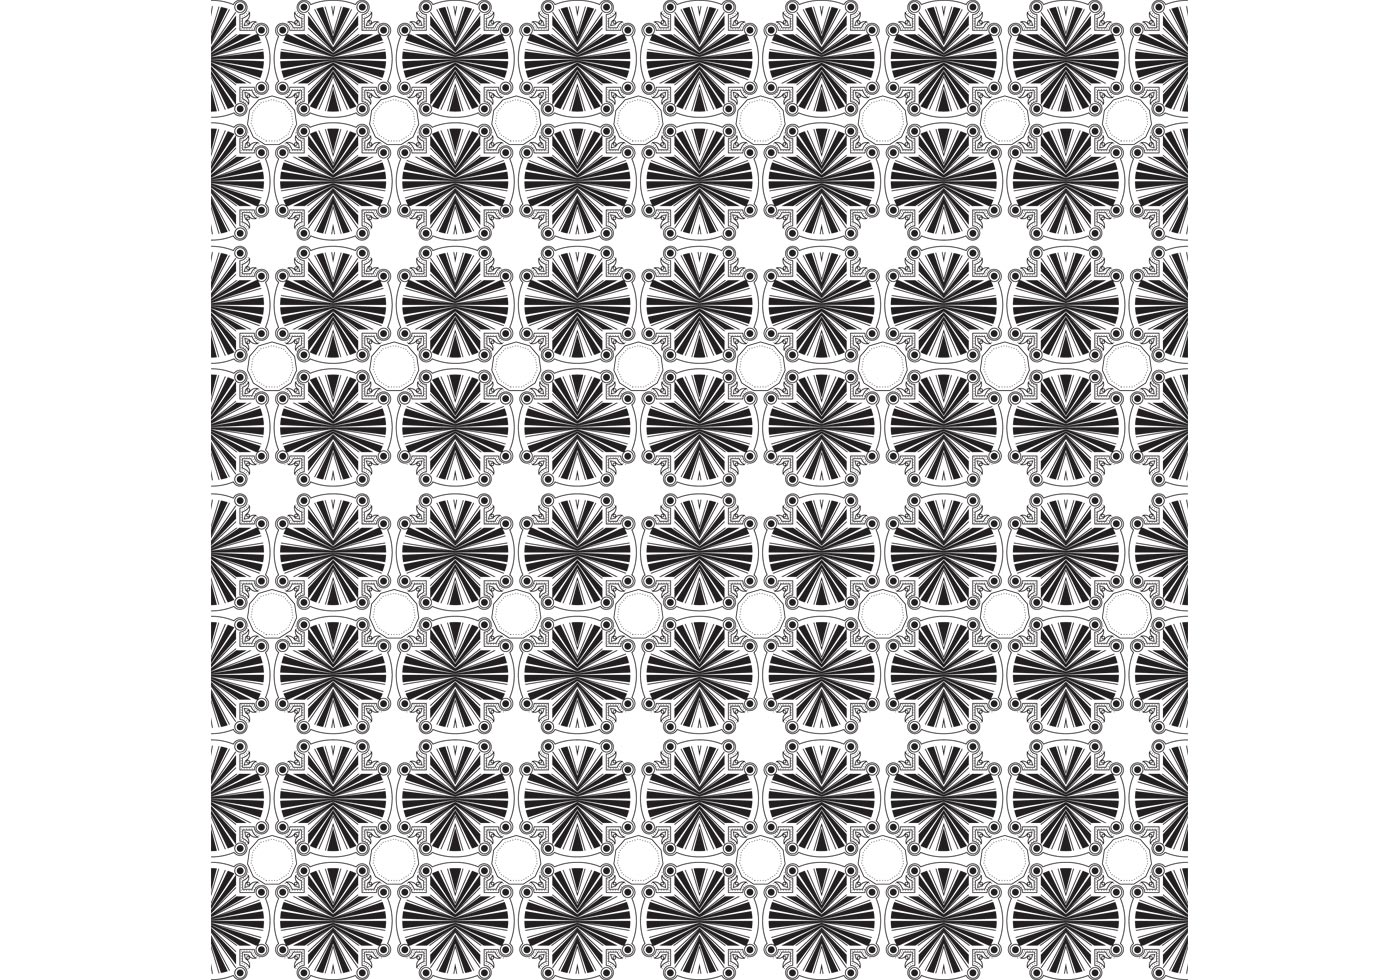 Free Black and White Background Vector